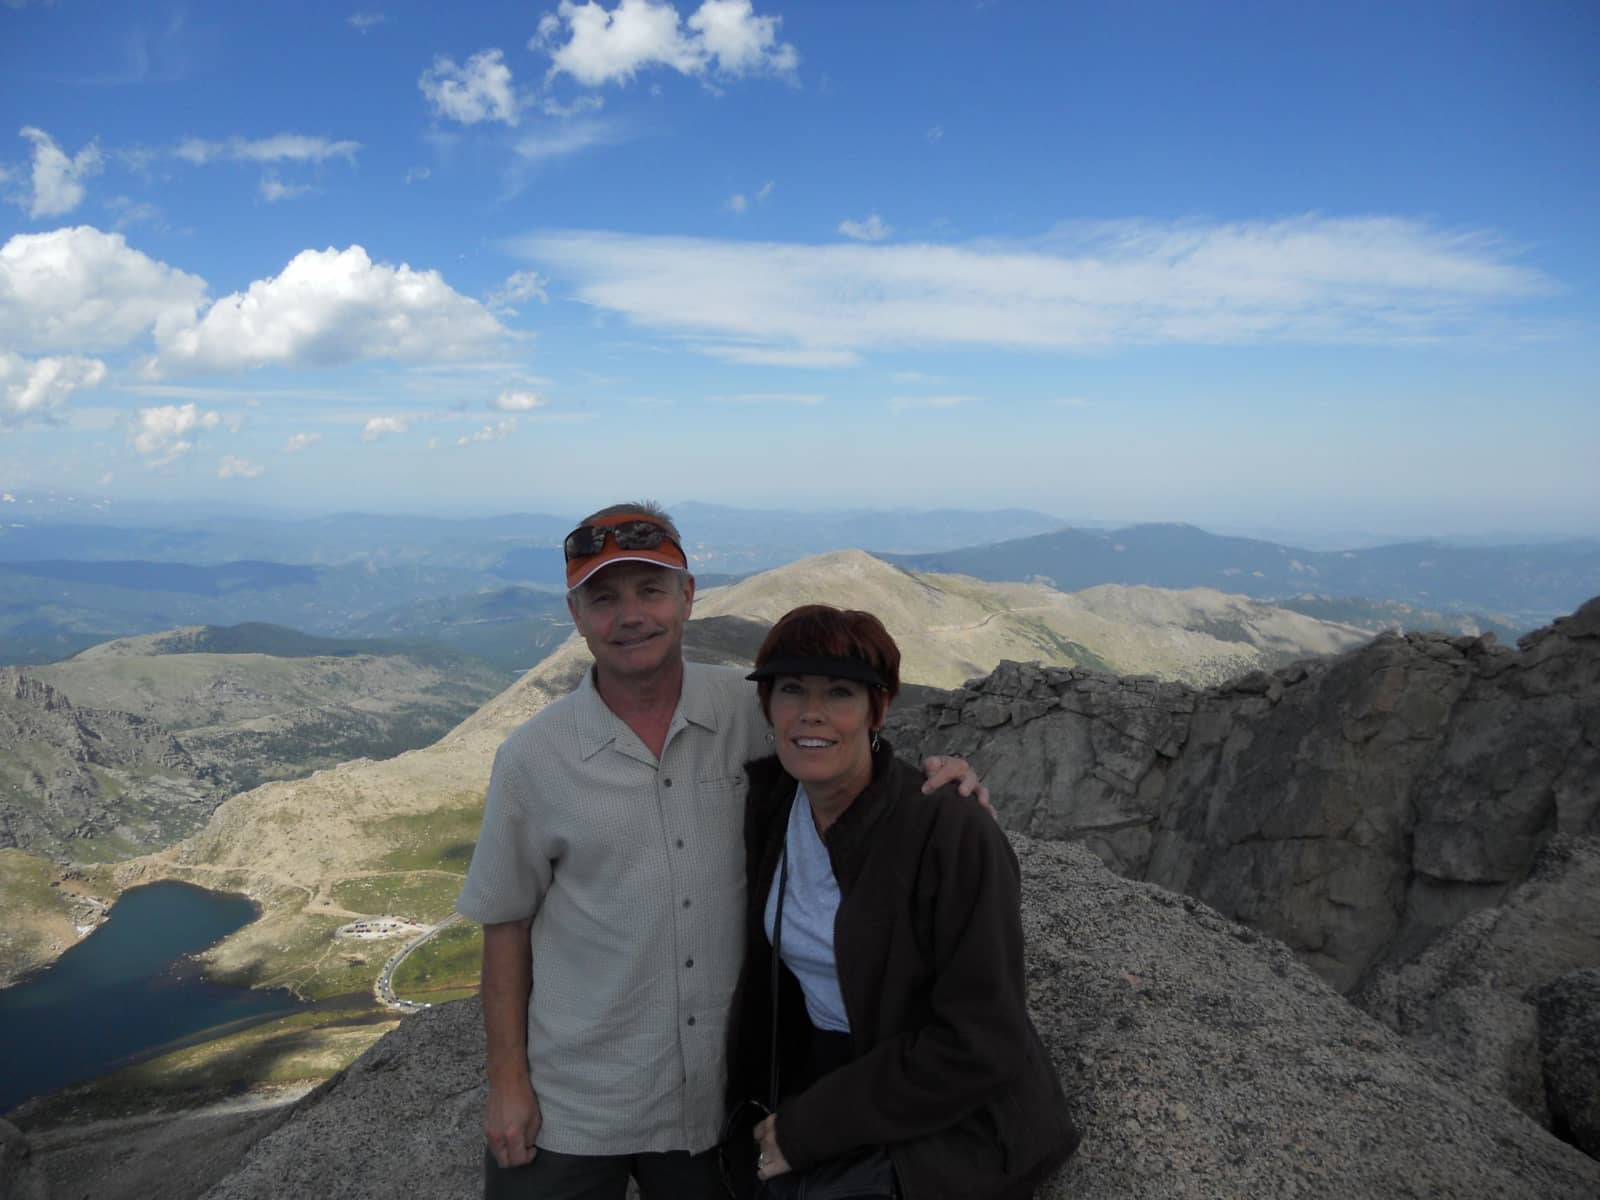 Alan & Denise from Denver, Colorado, United States